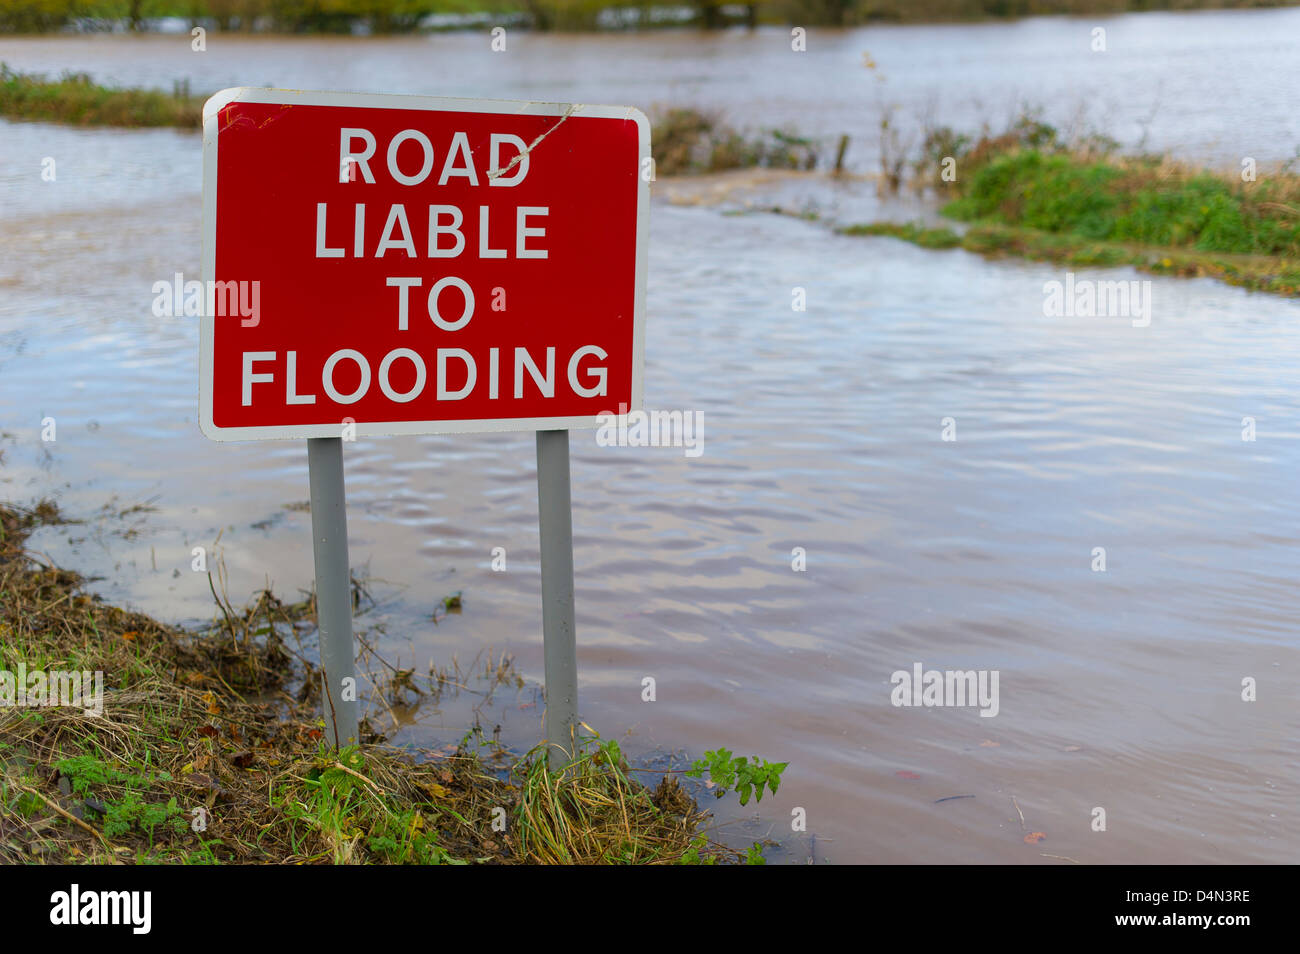 road liable to flooding sign, pictured surrounded by flood water, in Devon, UK Stock Photo